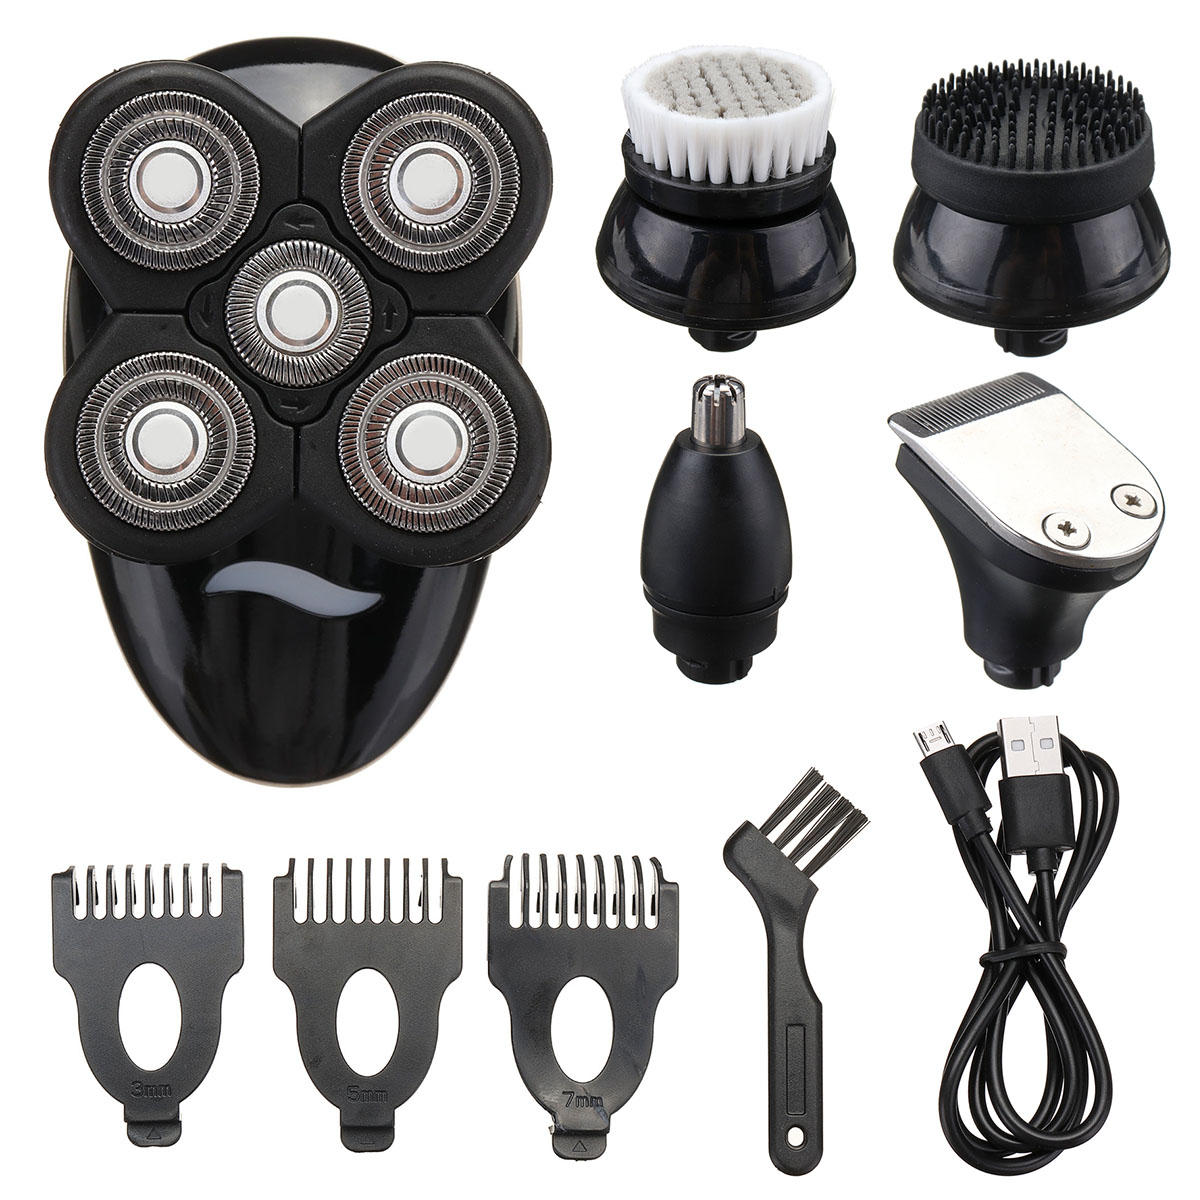 5 In1 Wet Dry 4D Rechargeable Shaver Razor Cordless Hair Clipper Trimmer Groomer Waterproof